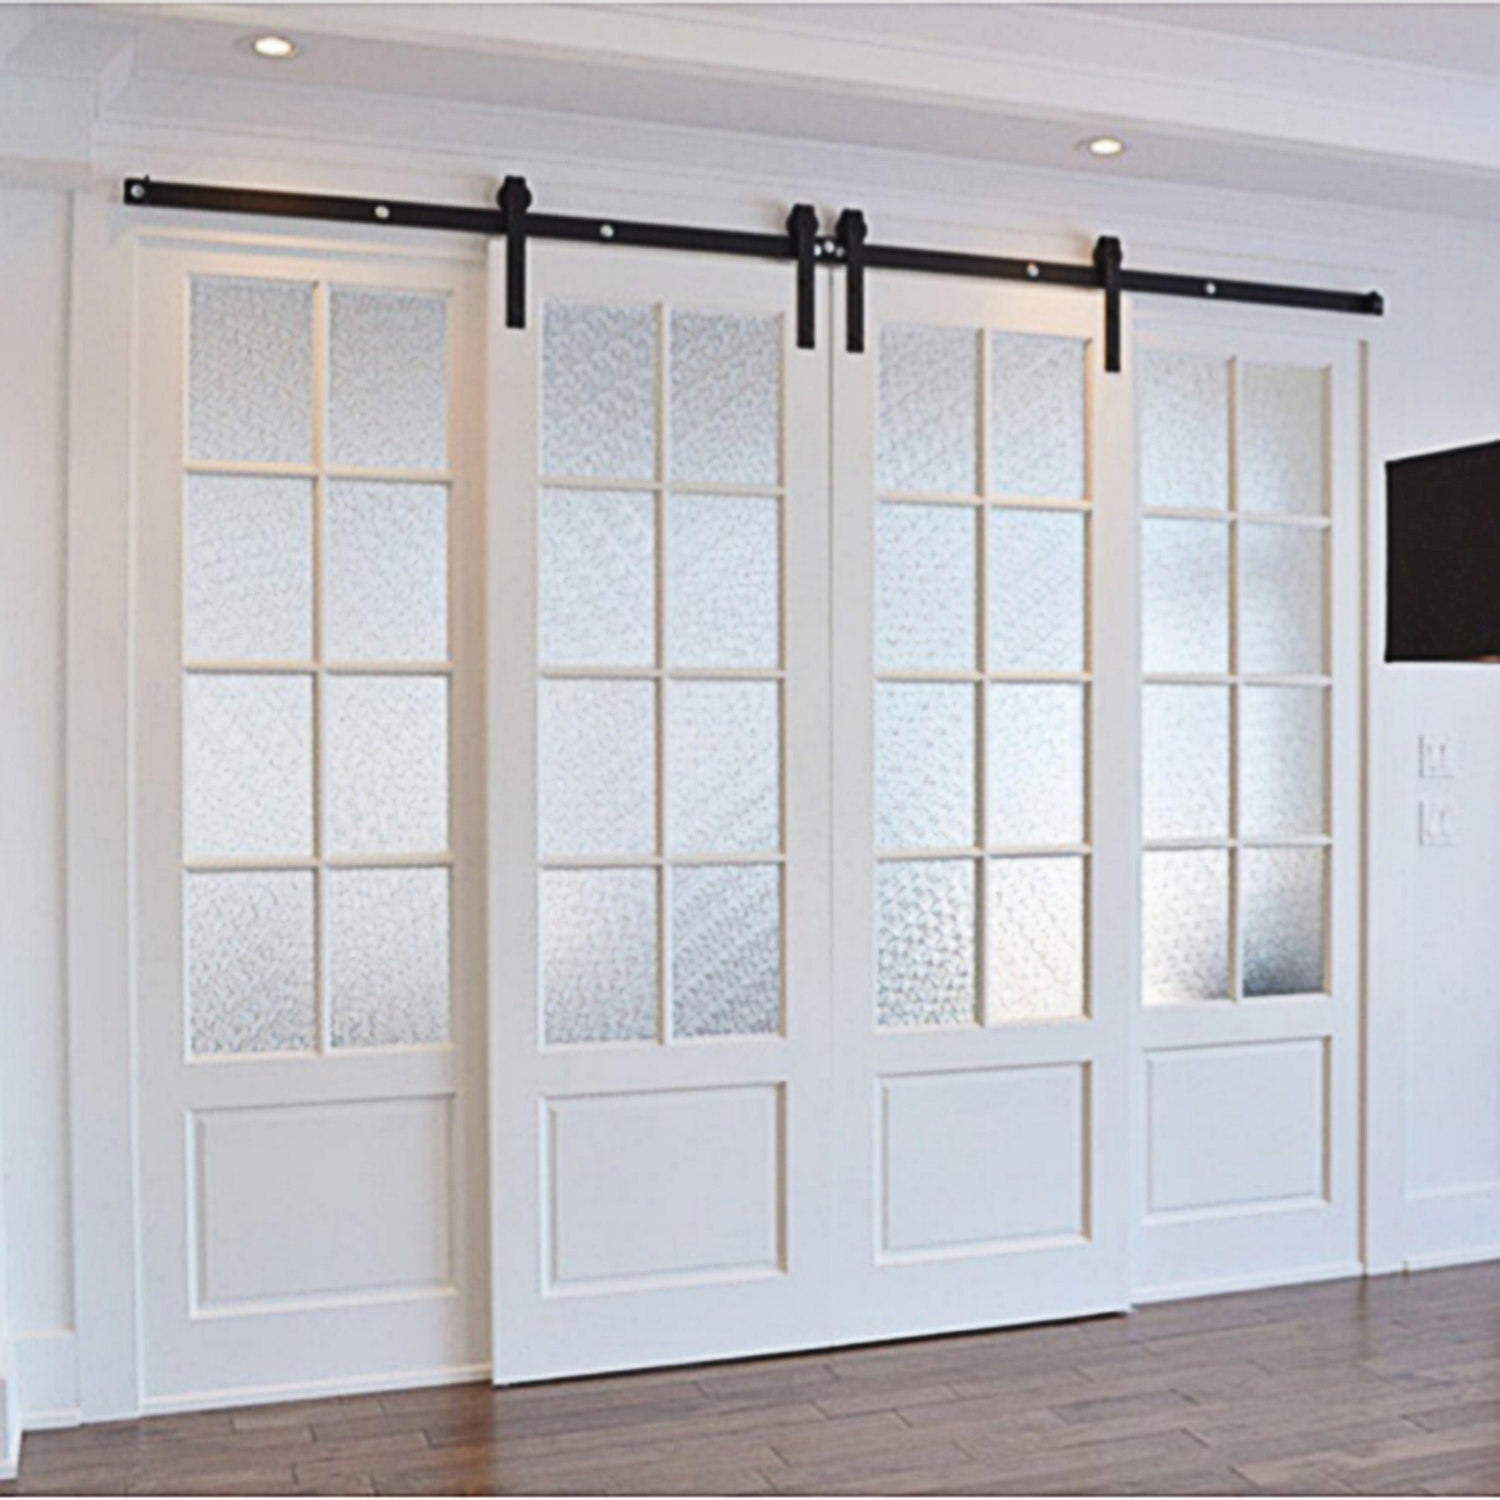 Winsoon 10 Ft Double Barn Door Hardware Sliding Rolling Closet Track Kit Set Classic Design Double Barn Doors Sliding Barn Door Hardware Barn Door Hardware